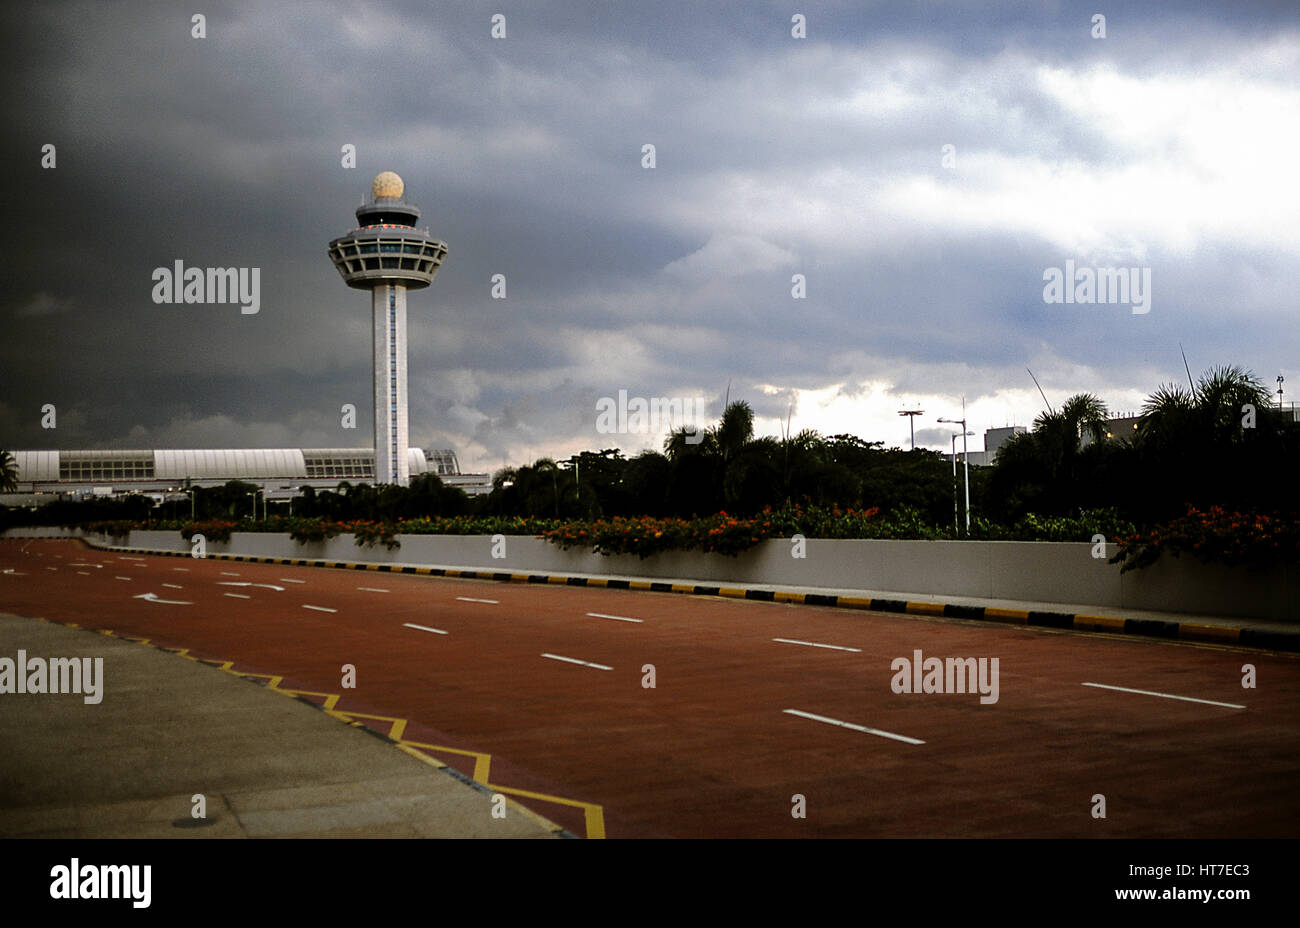 01.01.2010 - 31.12.2010, Singapore, Republic of Singapore, Asia - A view of the air traffic control tower at Singapore's - Stock Image